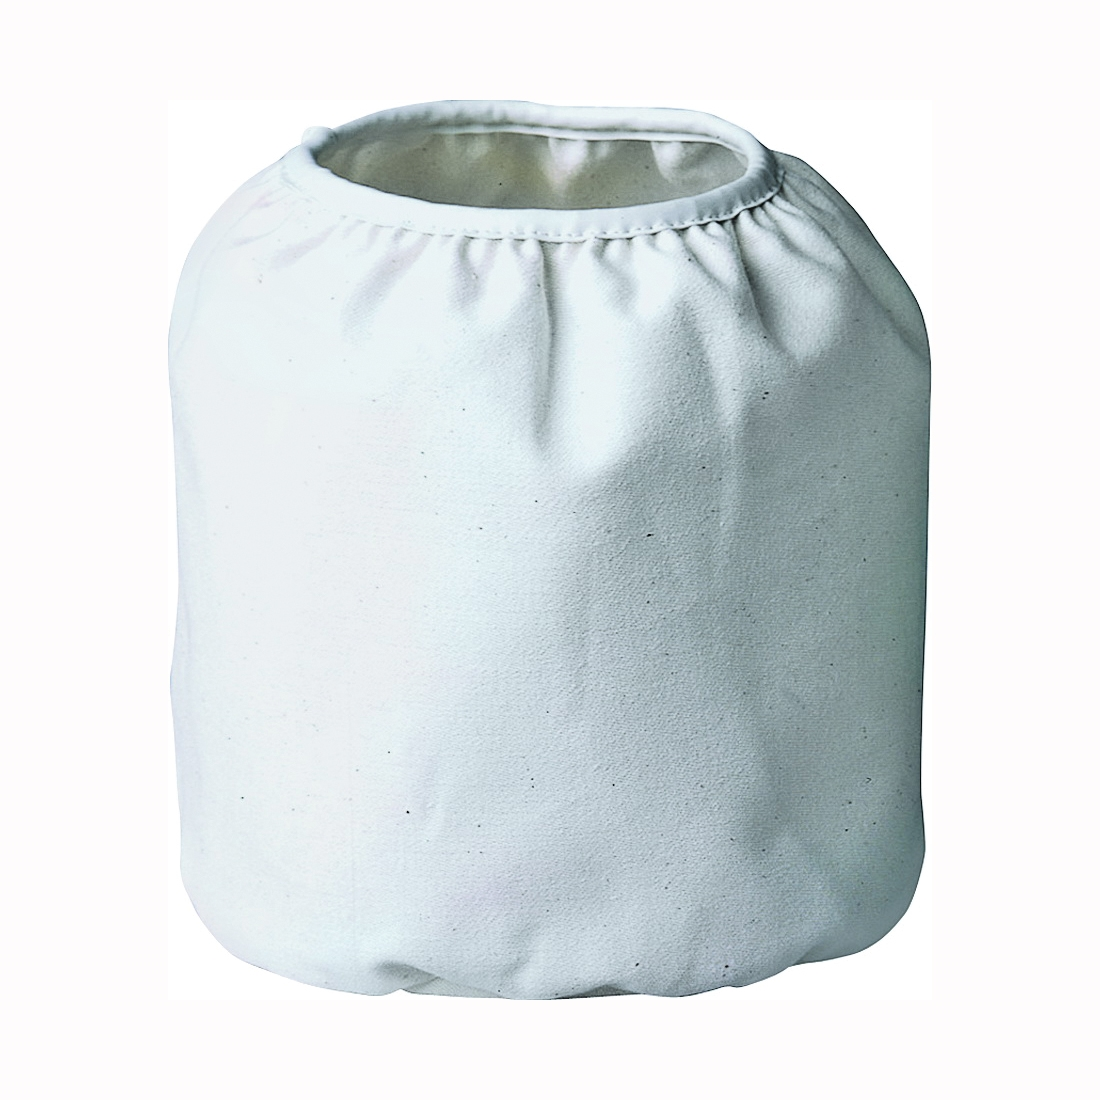 Picture of Shop-Vac 9010200 Cloth Filter Bag, 5 gal Capacity, Cotton